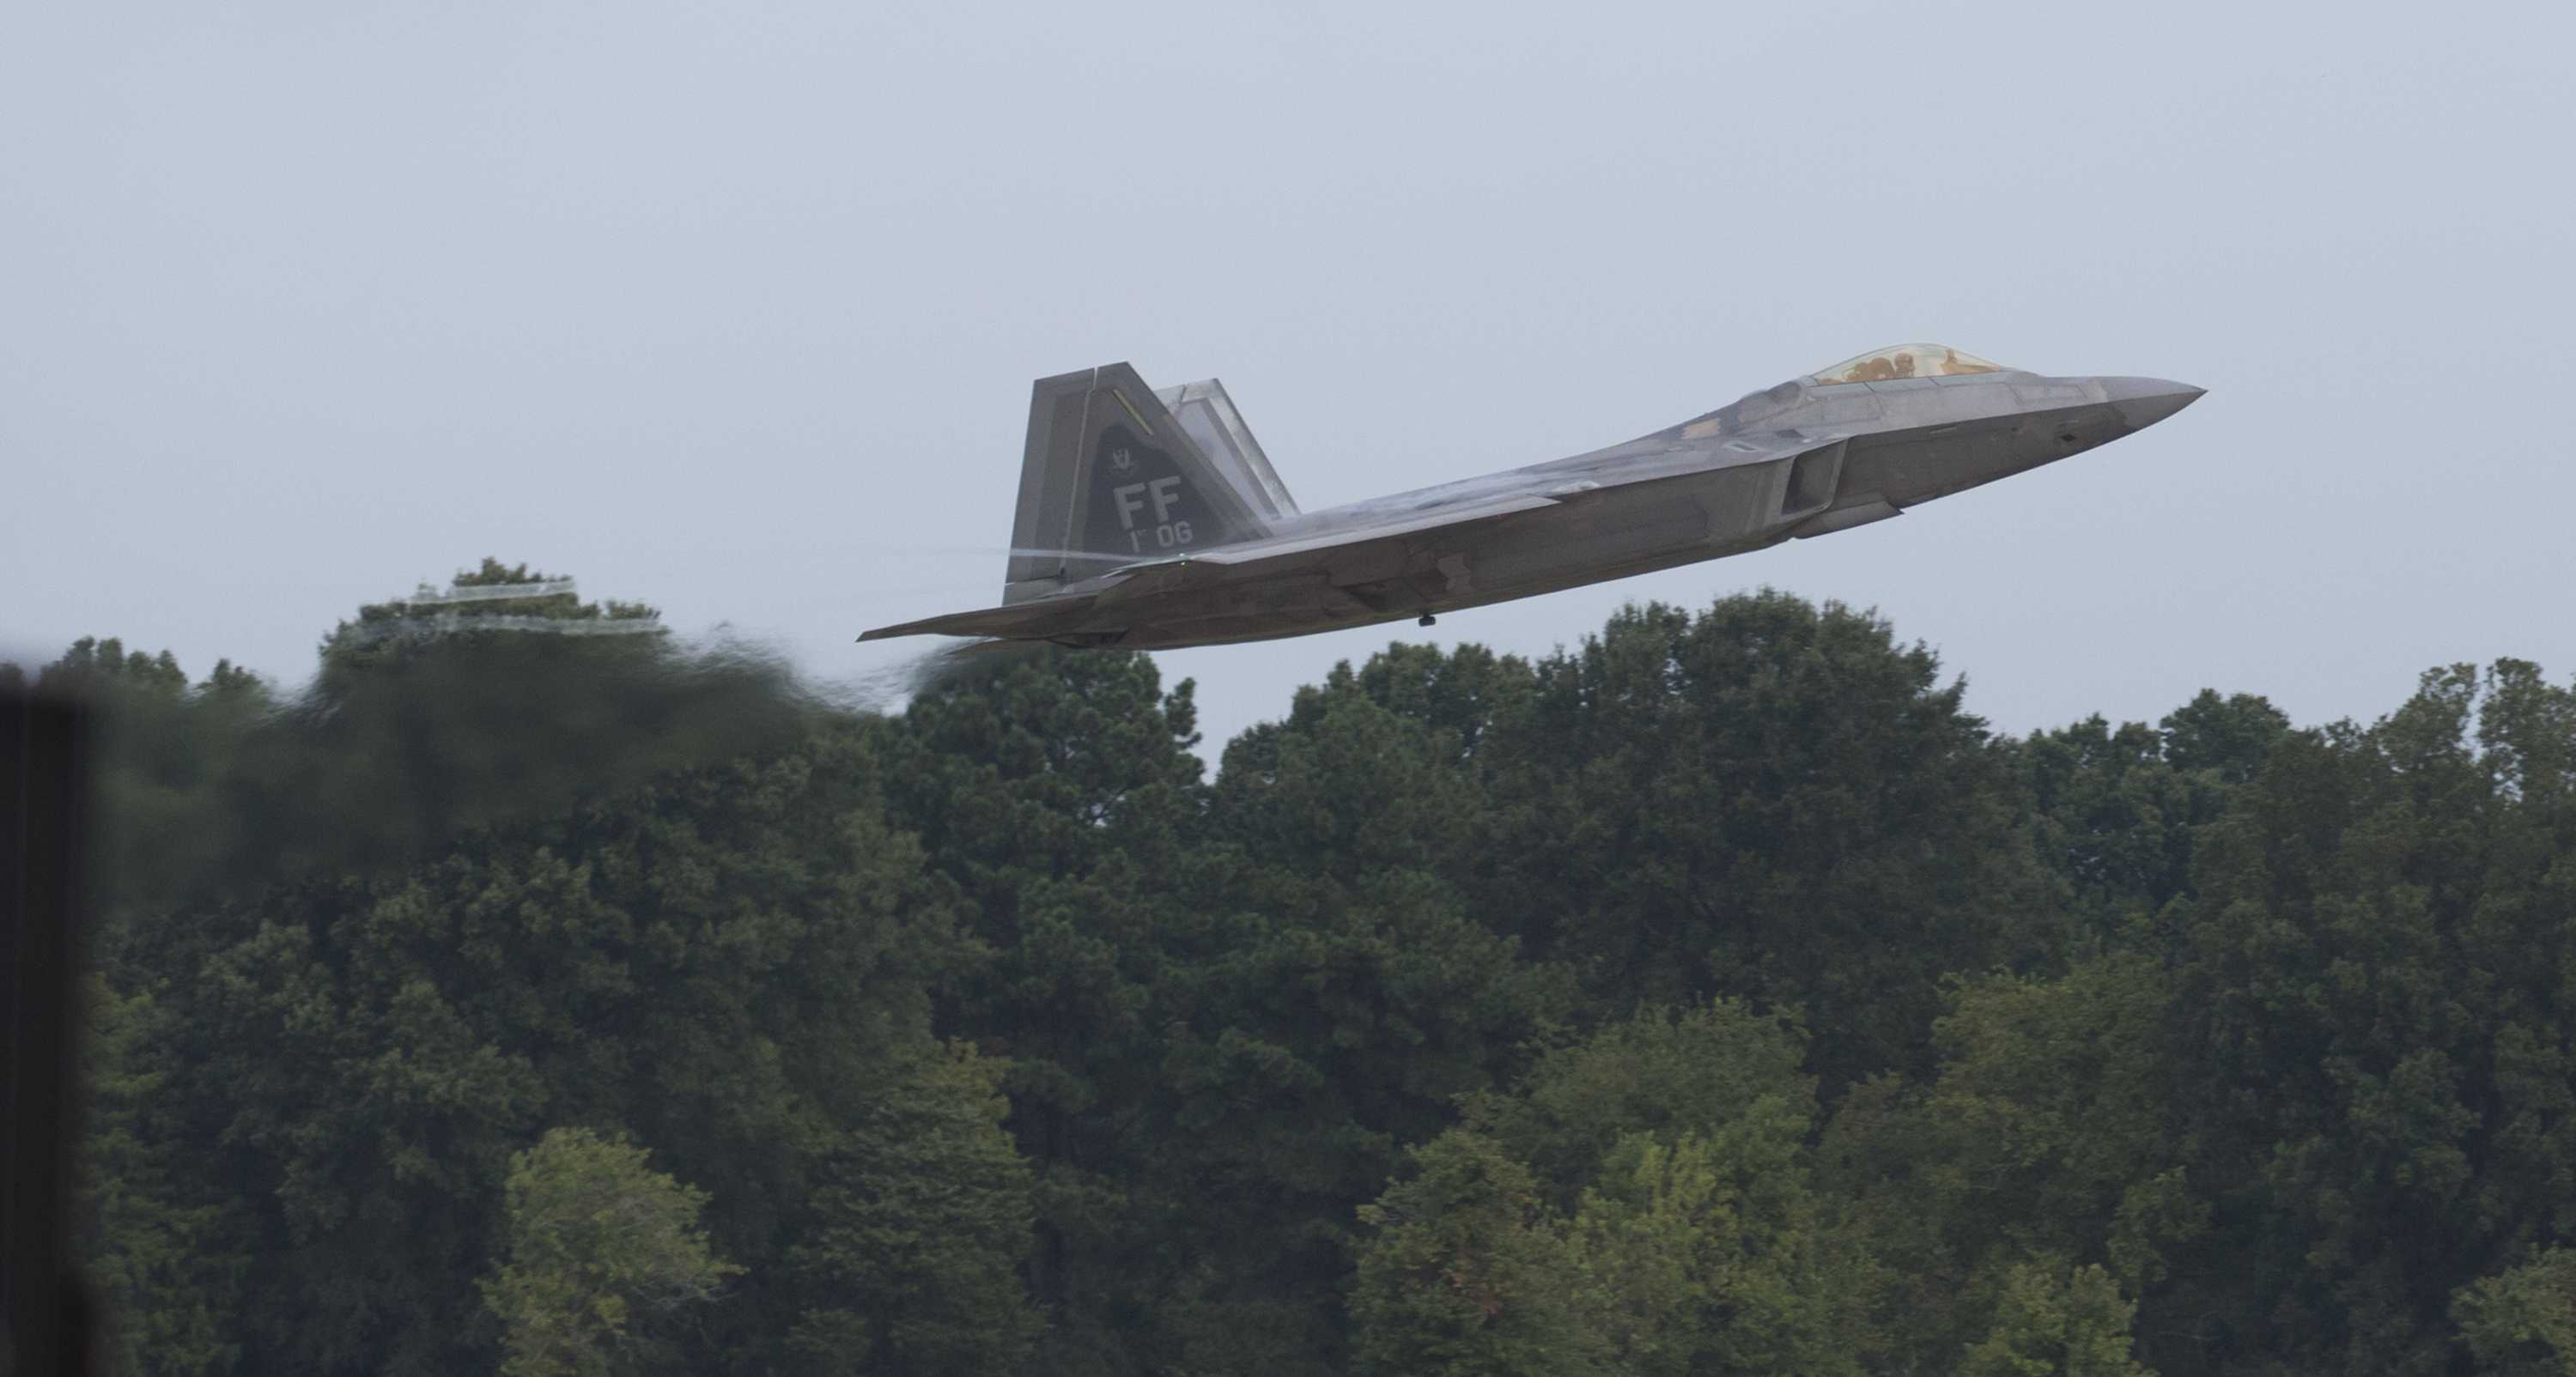 An F-22 Raptor jet clears the runway after takeoff at Langley Air Force Base on Wednesday, Sept. 4, 2019.